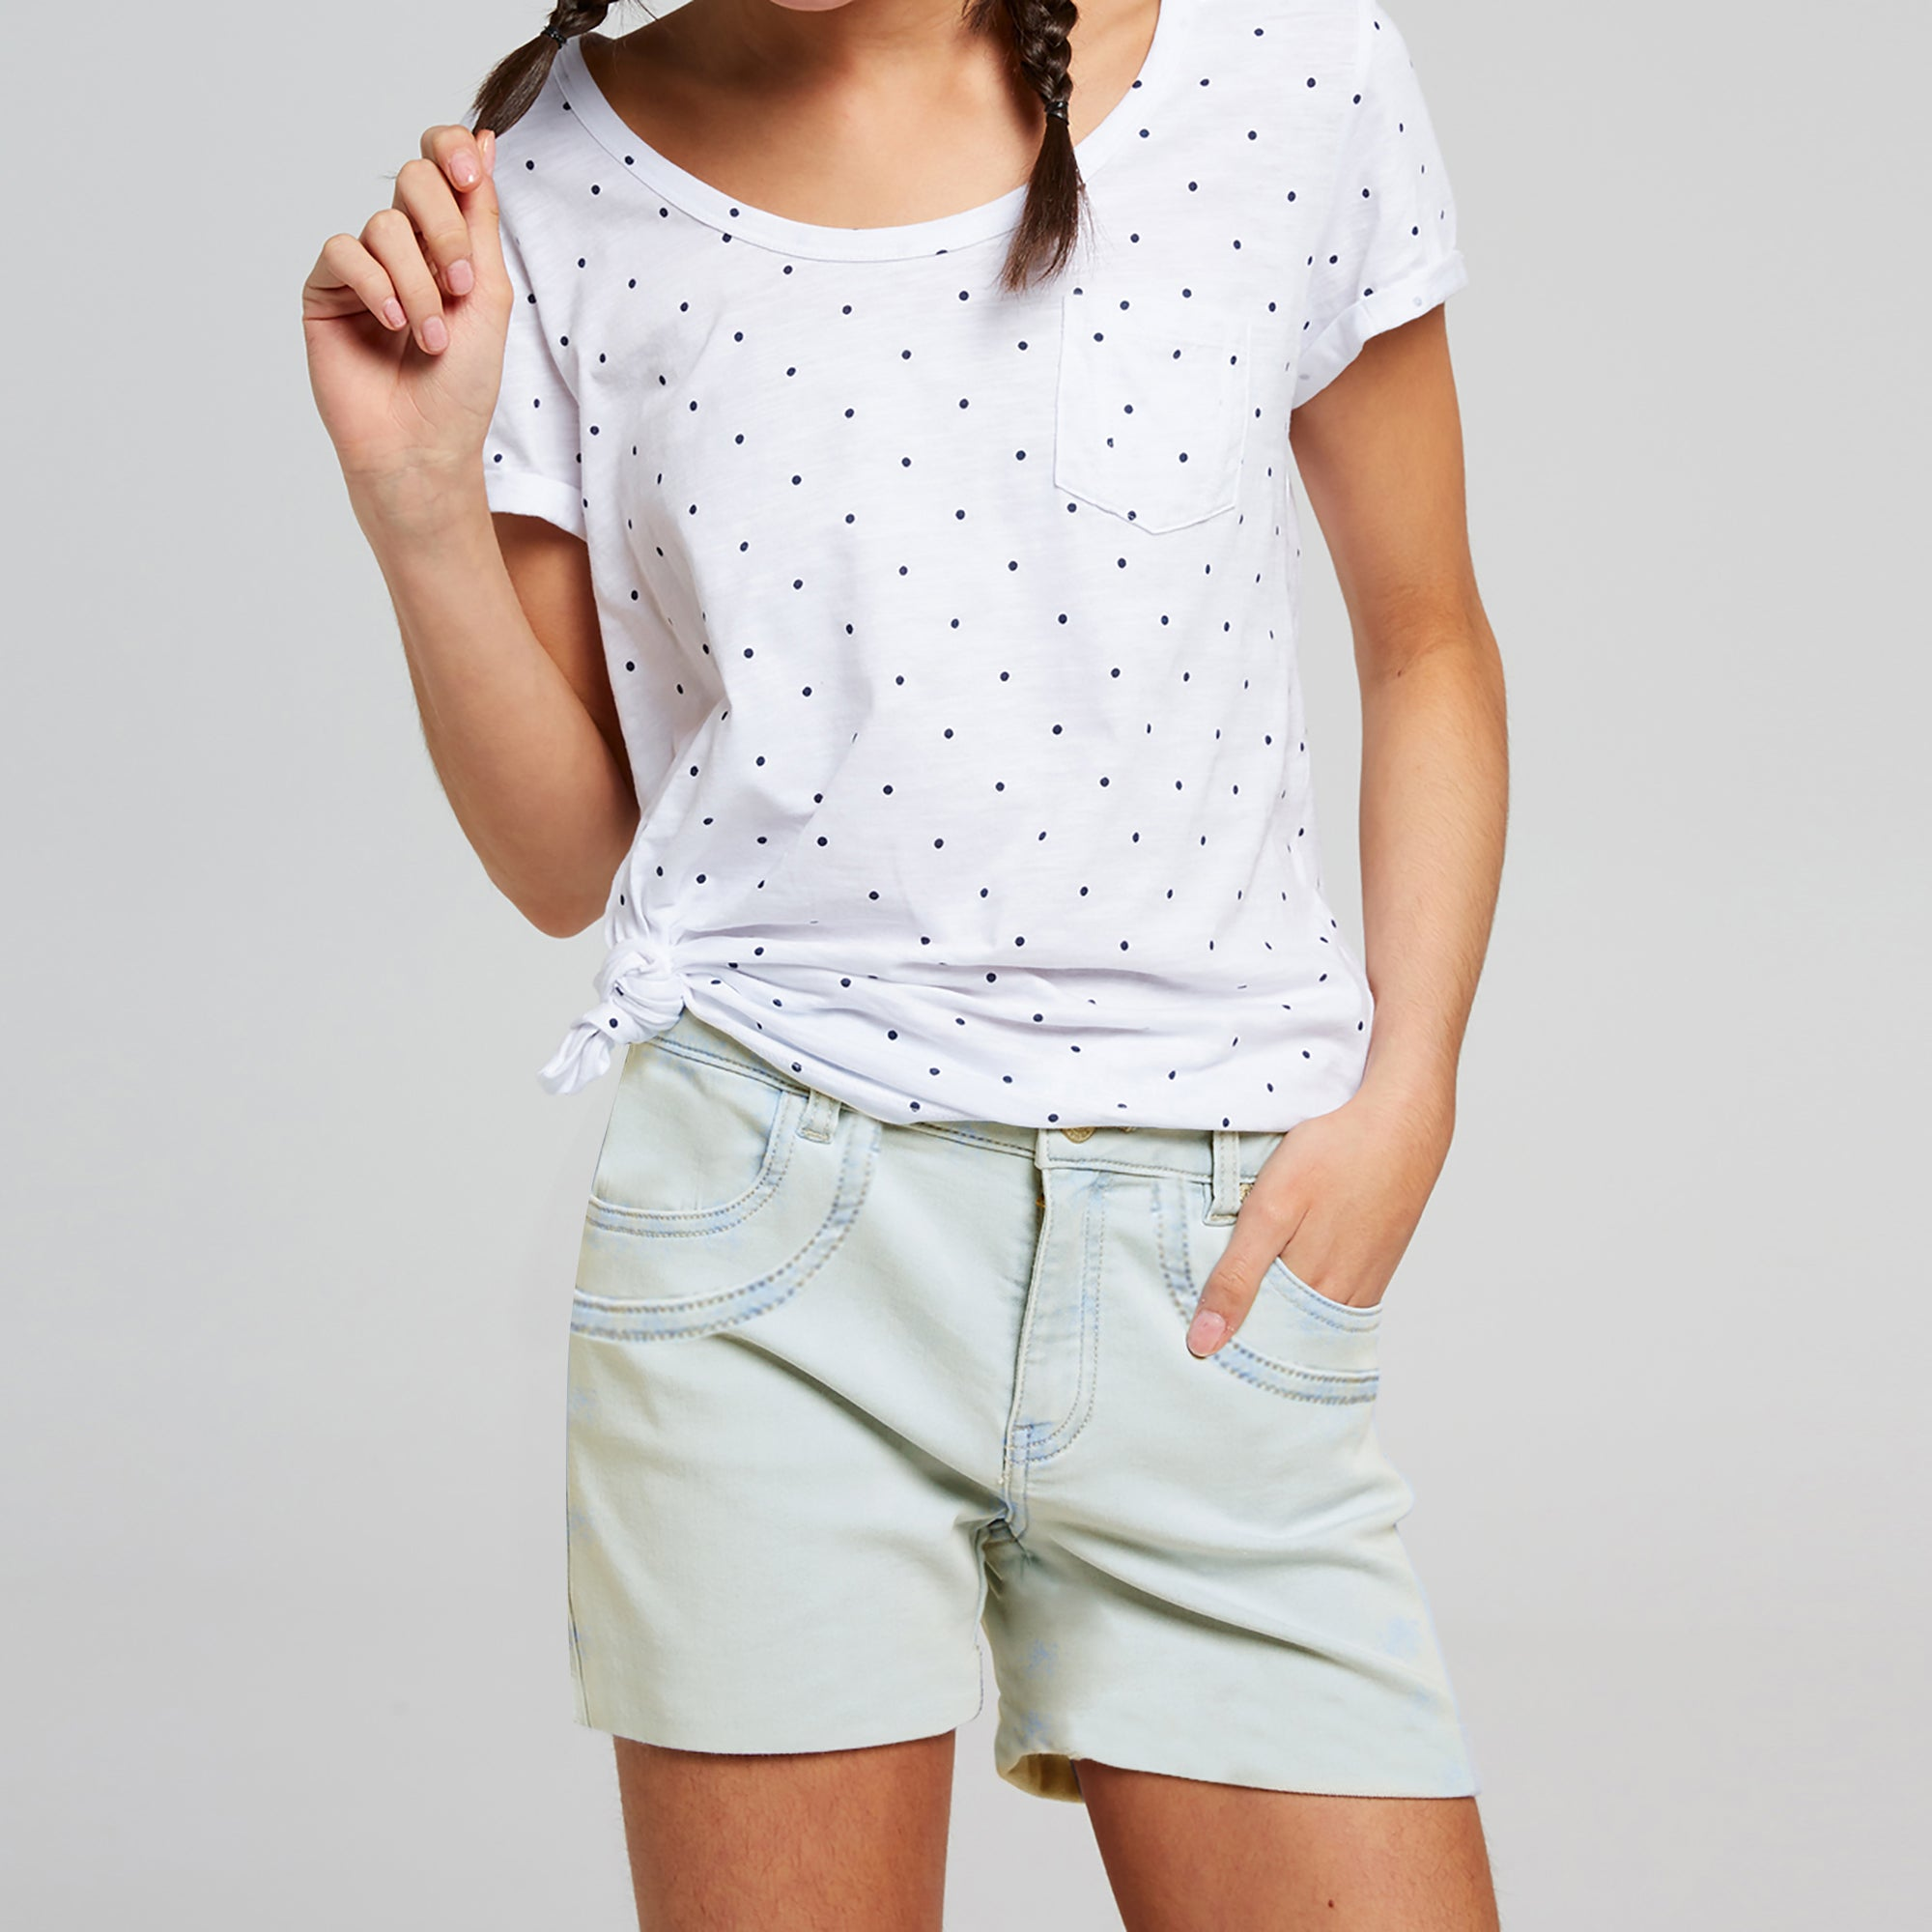 brandsego - Tammy Girl Denim Short For Girls-Off White Faded-BE7079